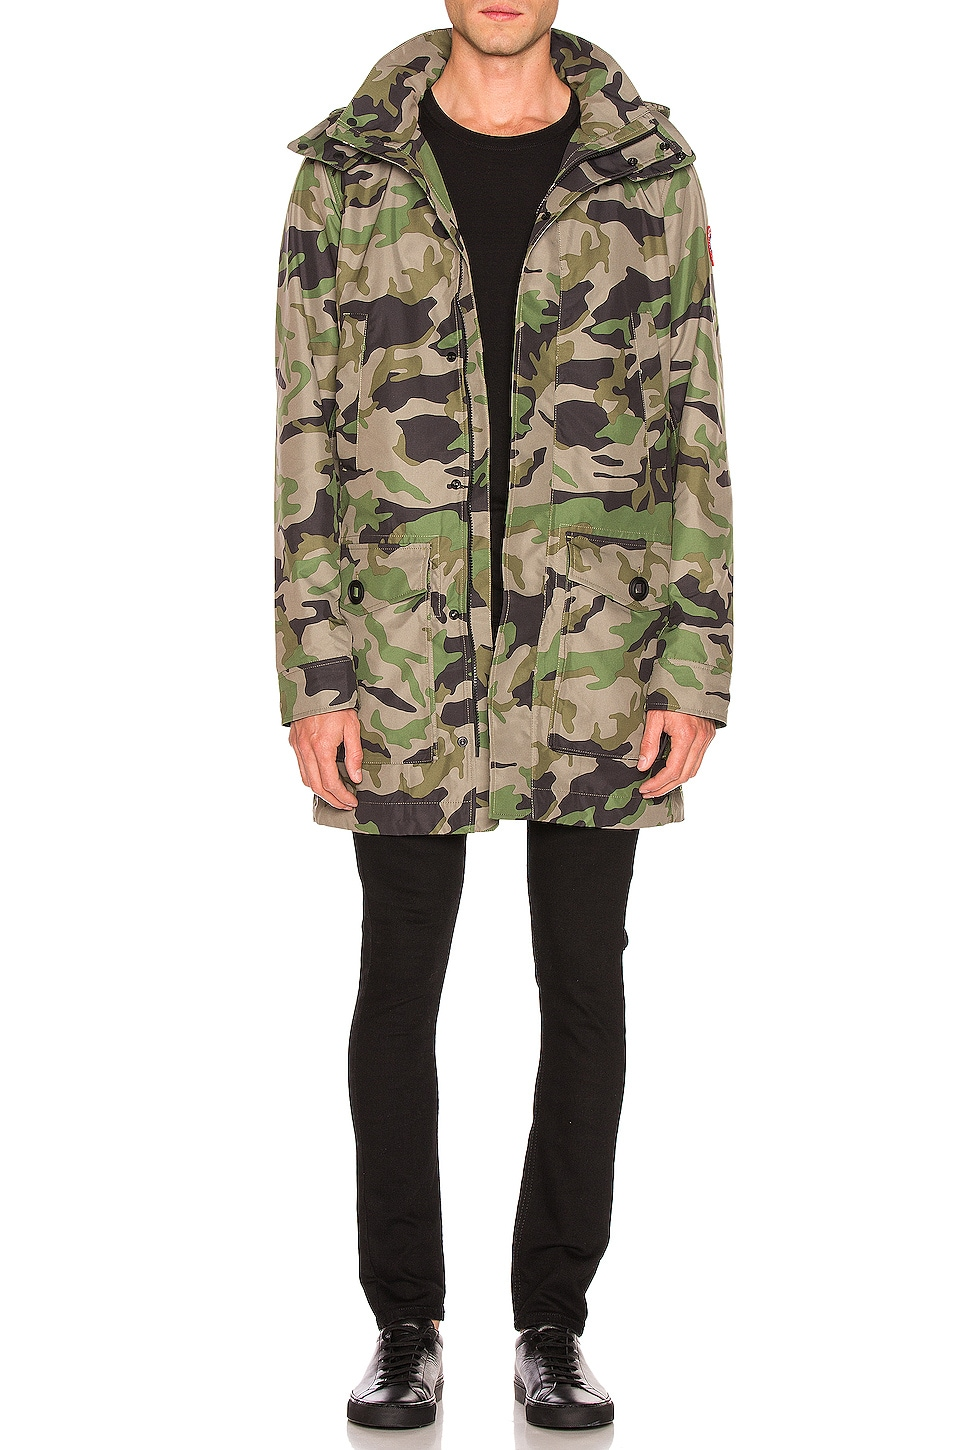 Canada Goose Crew Trench in Camo